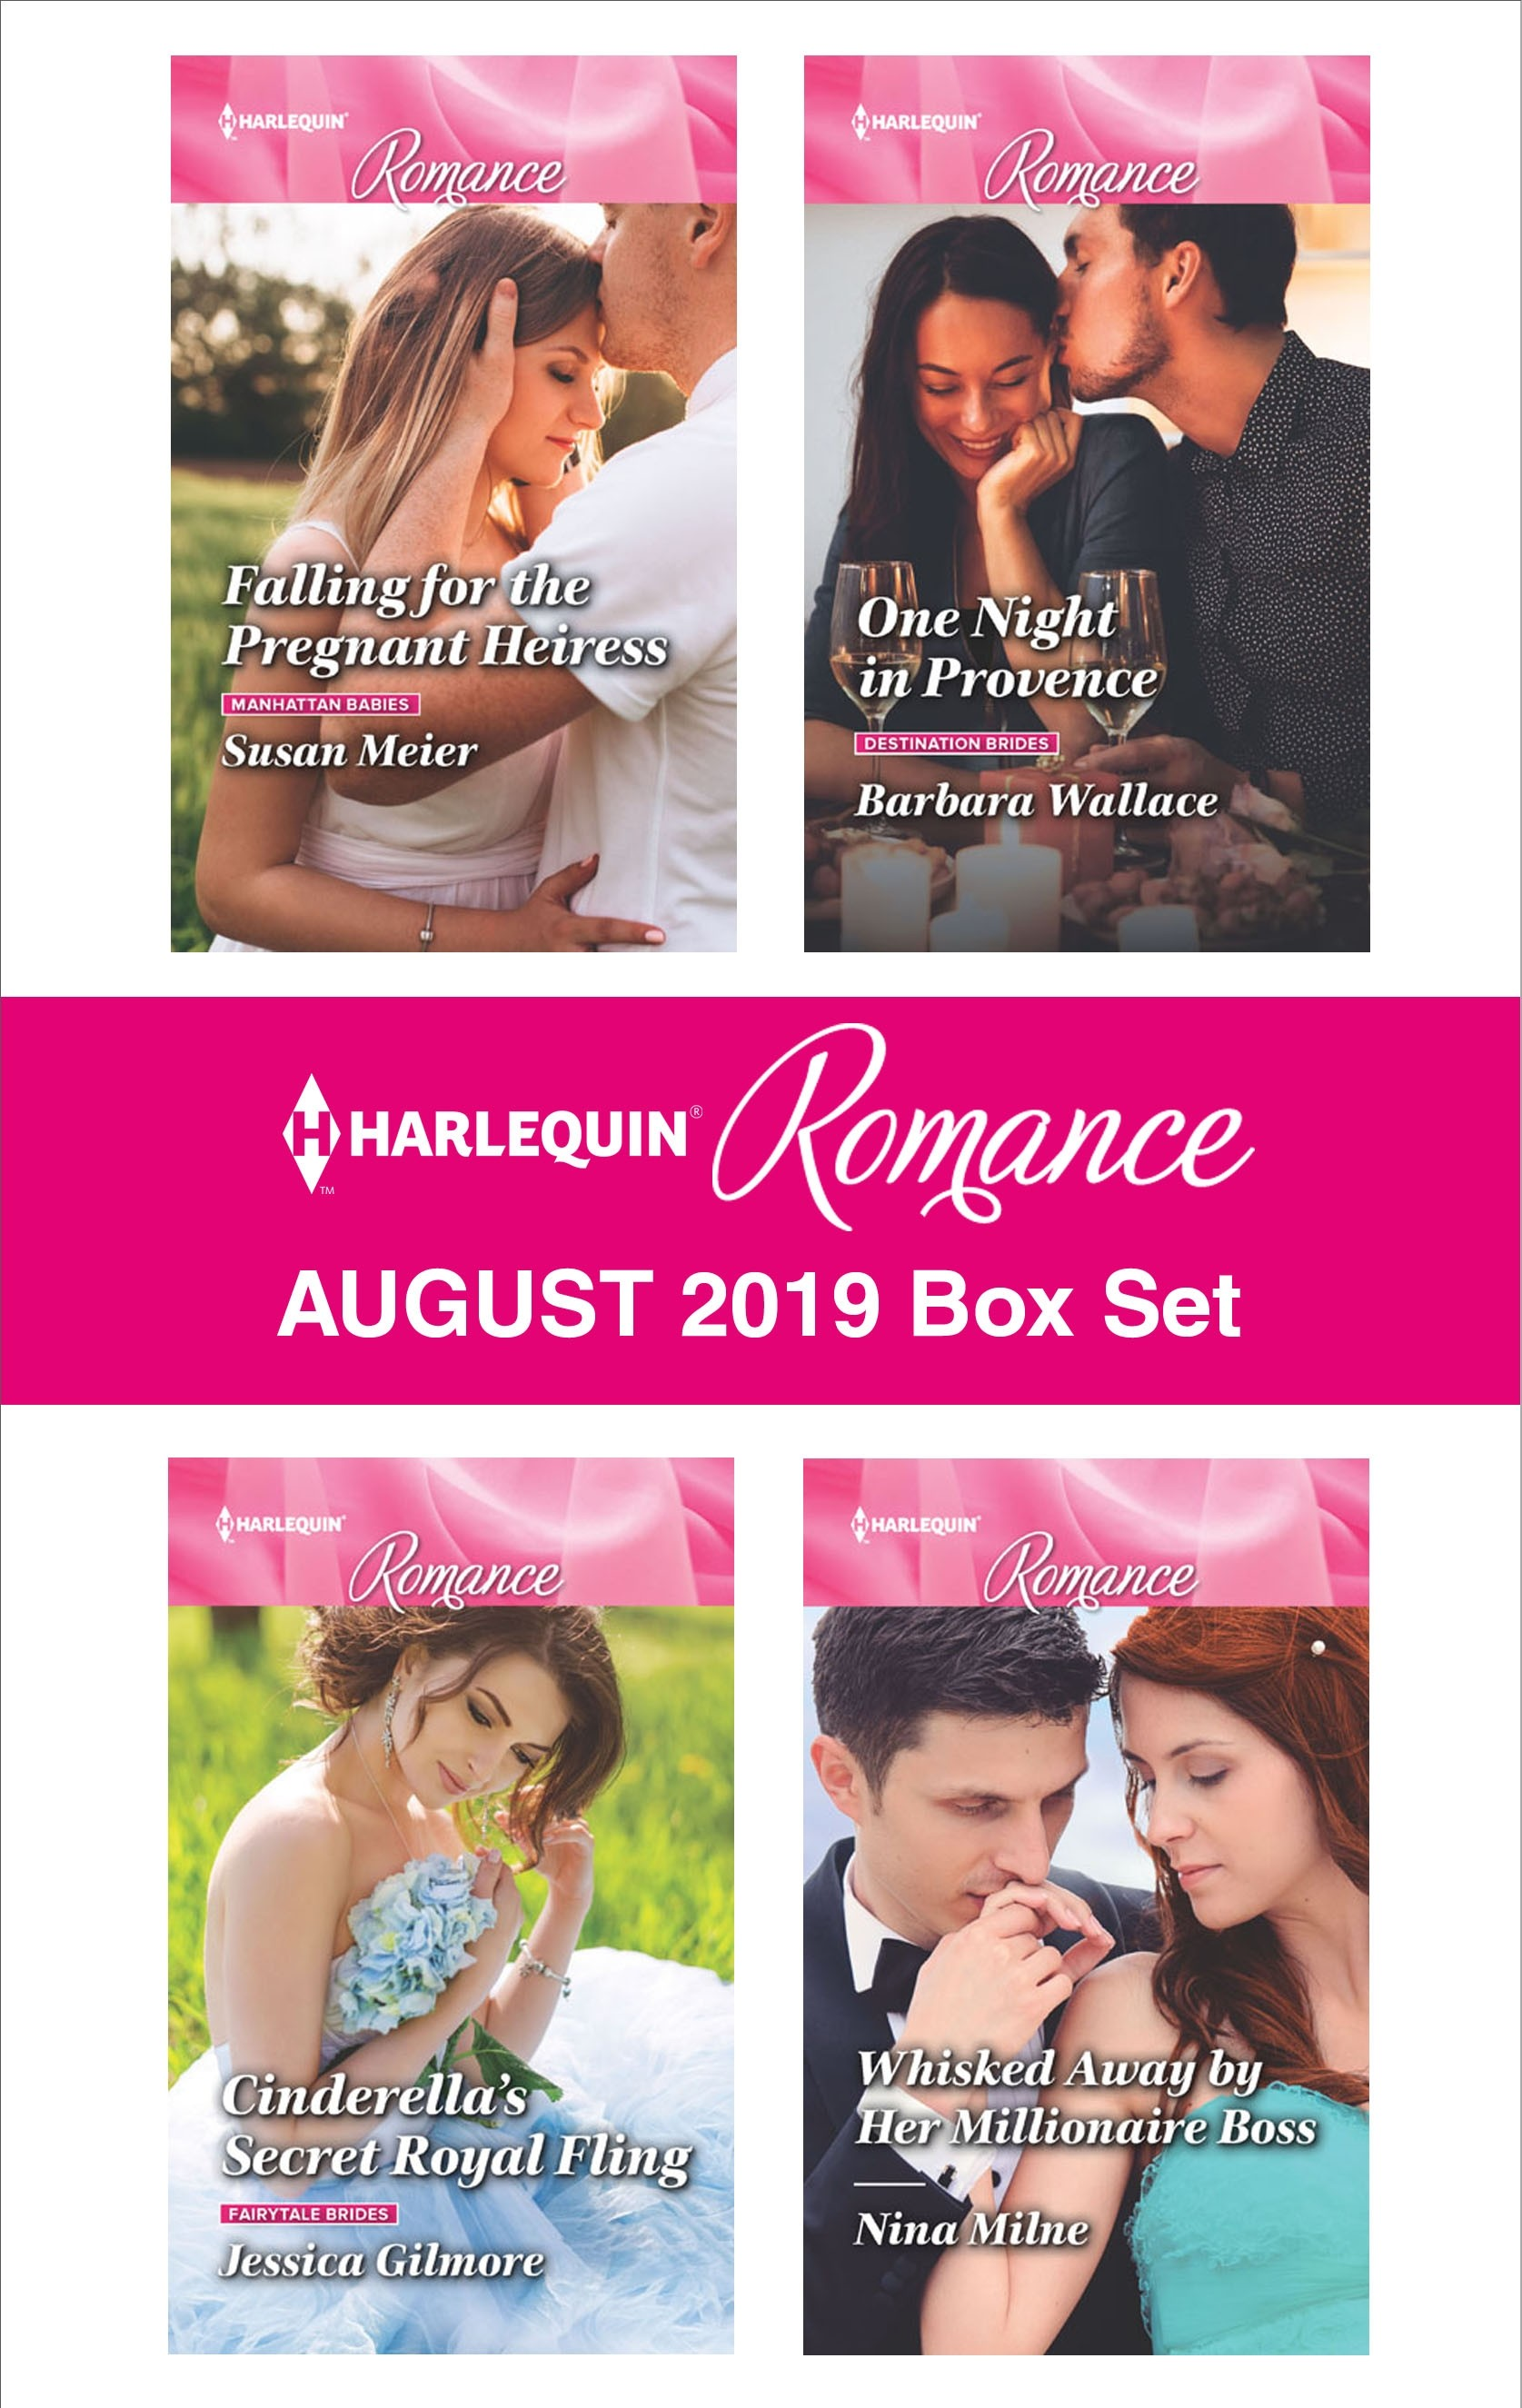 Harlequin Romance August 2019 Box Set